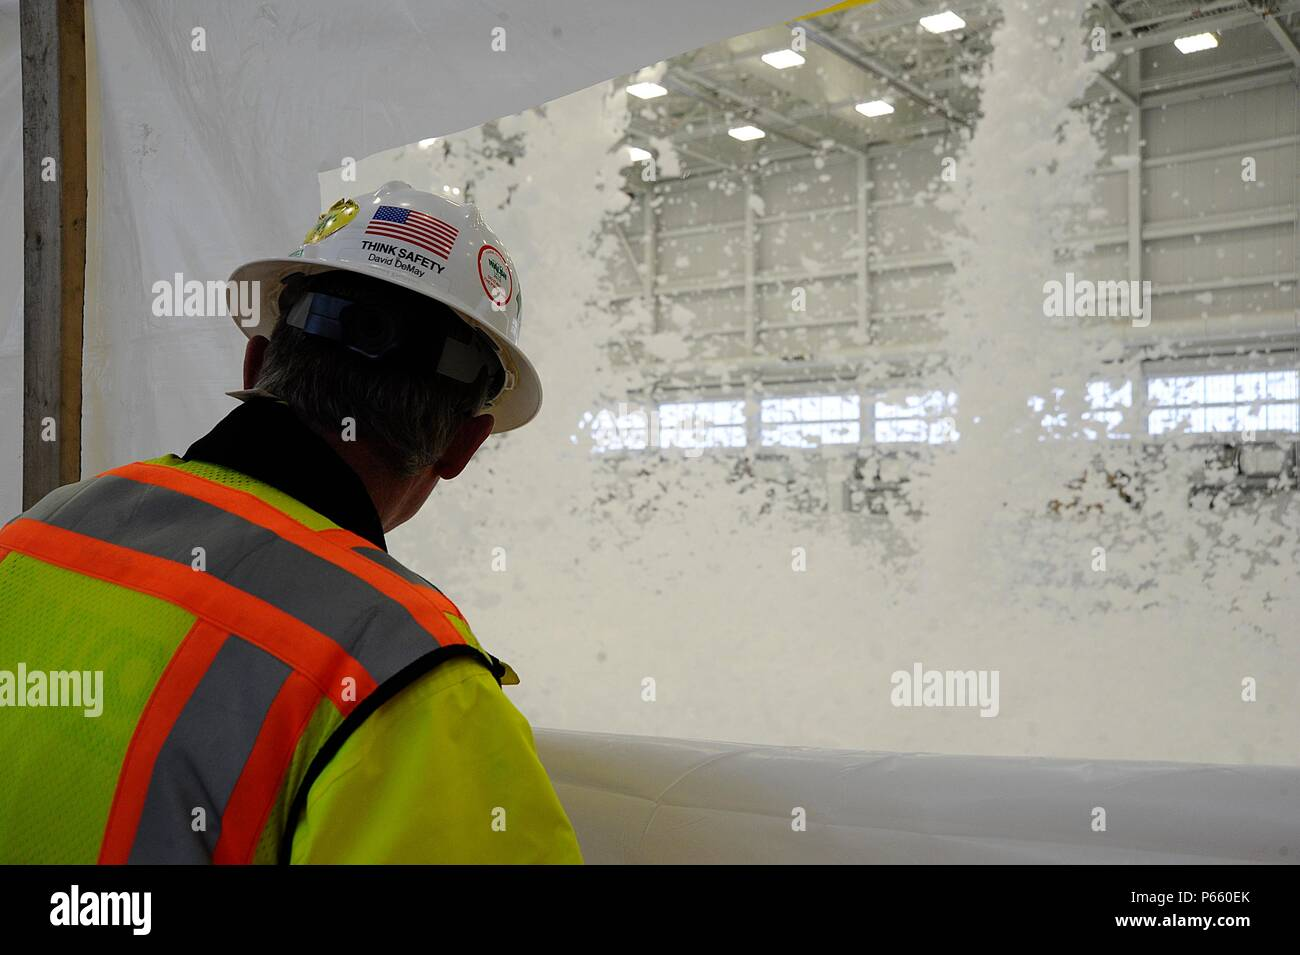 David Demay, construction site manager, watches foam rain down in a hangar during a fire suppression safety test, May 3, 2016, at McConnell Air Force Base, Kan. The new hangars will house the KC-46's, which are scheduled to arrive here in Spring 2017. The foam is dispensed from generators in the top of the hangar which expand and suffocate fire. (U.S. Air Force photo/Airman 1st Class Jenna K. Caldwell) - Stock Image